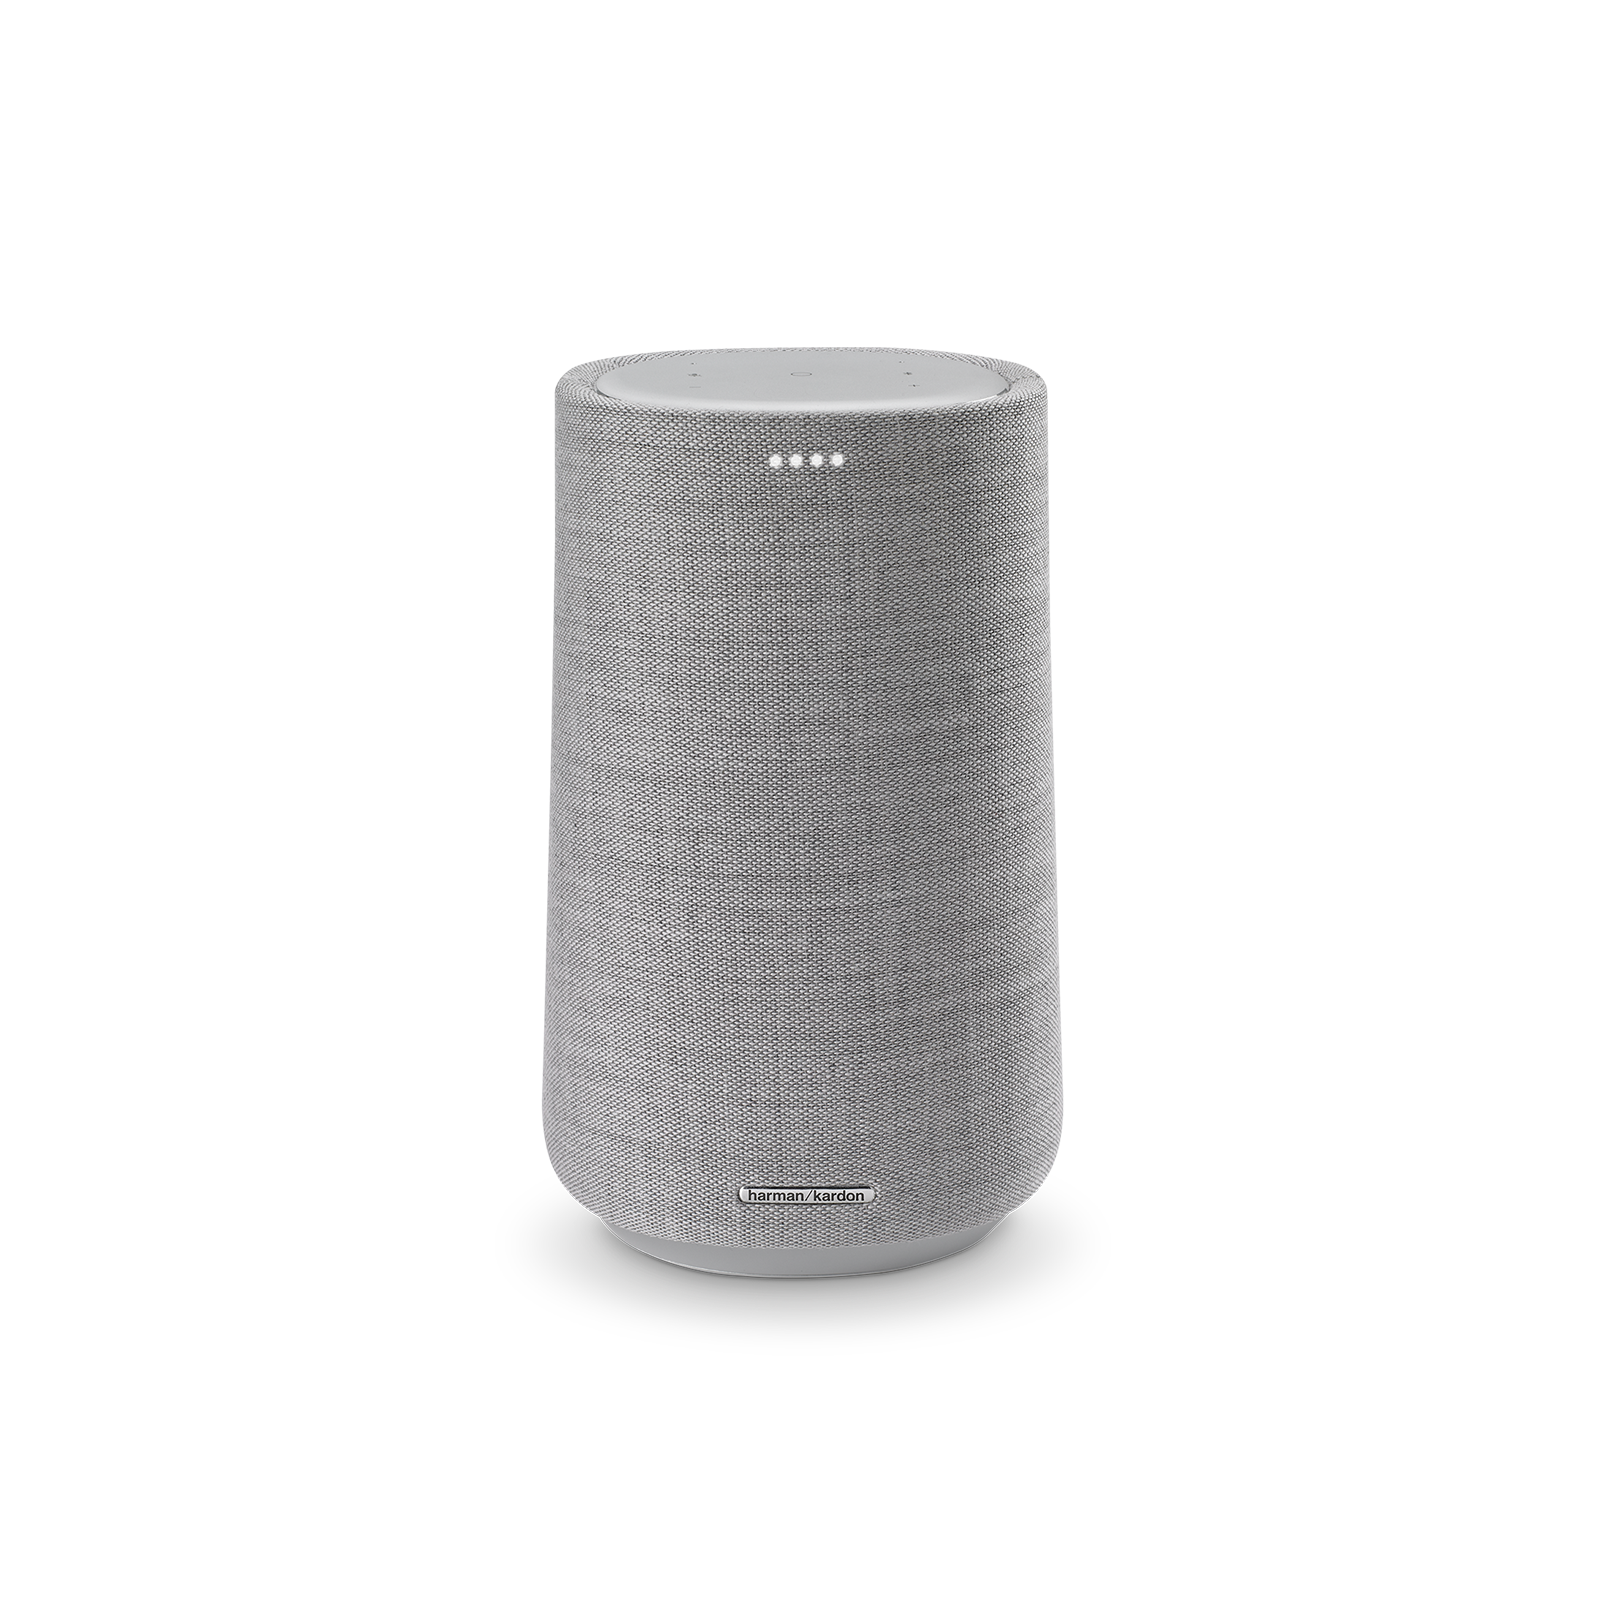 Harman Kardon Citation 100 - Grey - The smallest, smartest home speaker with impactful sound - Front